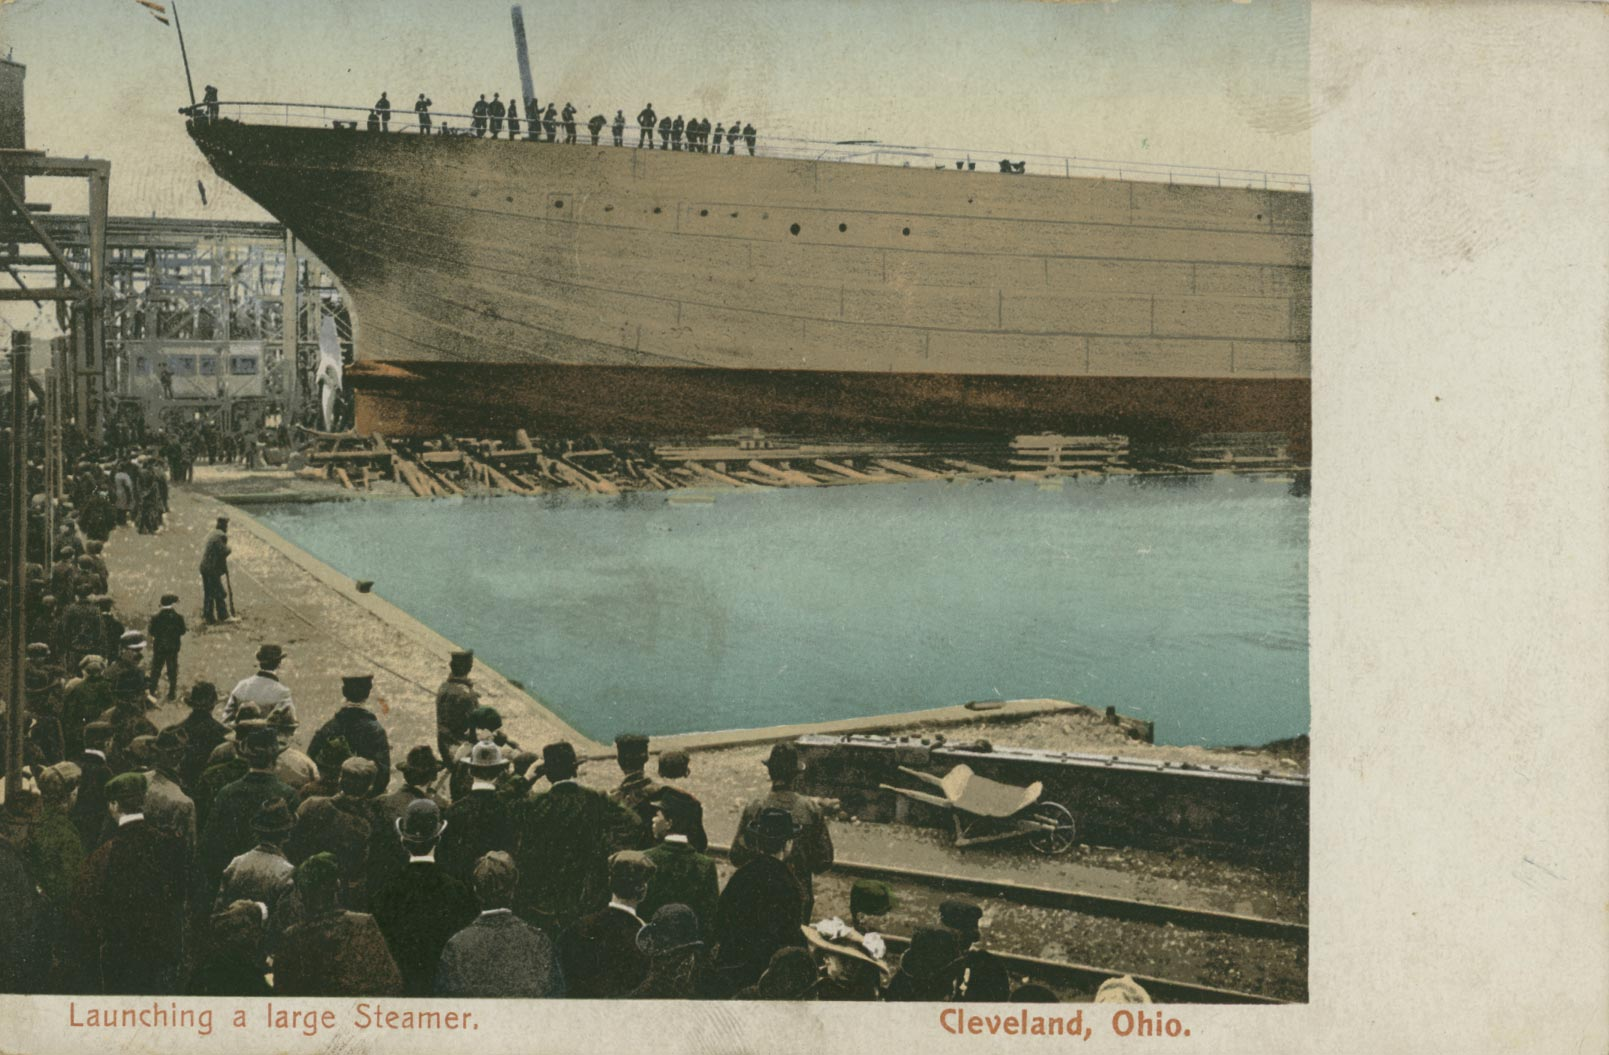 Launching a large Steamer, Cleveland, Ohio